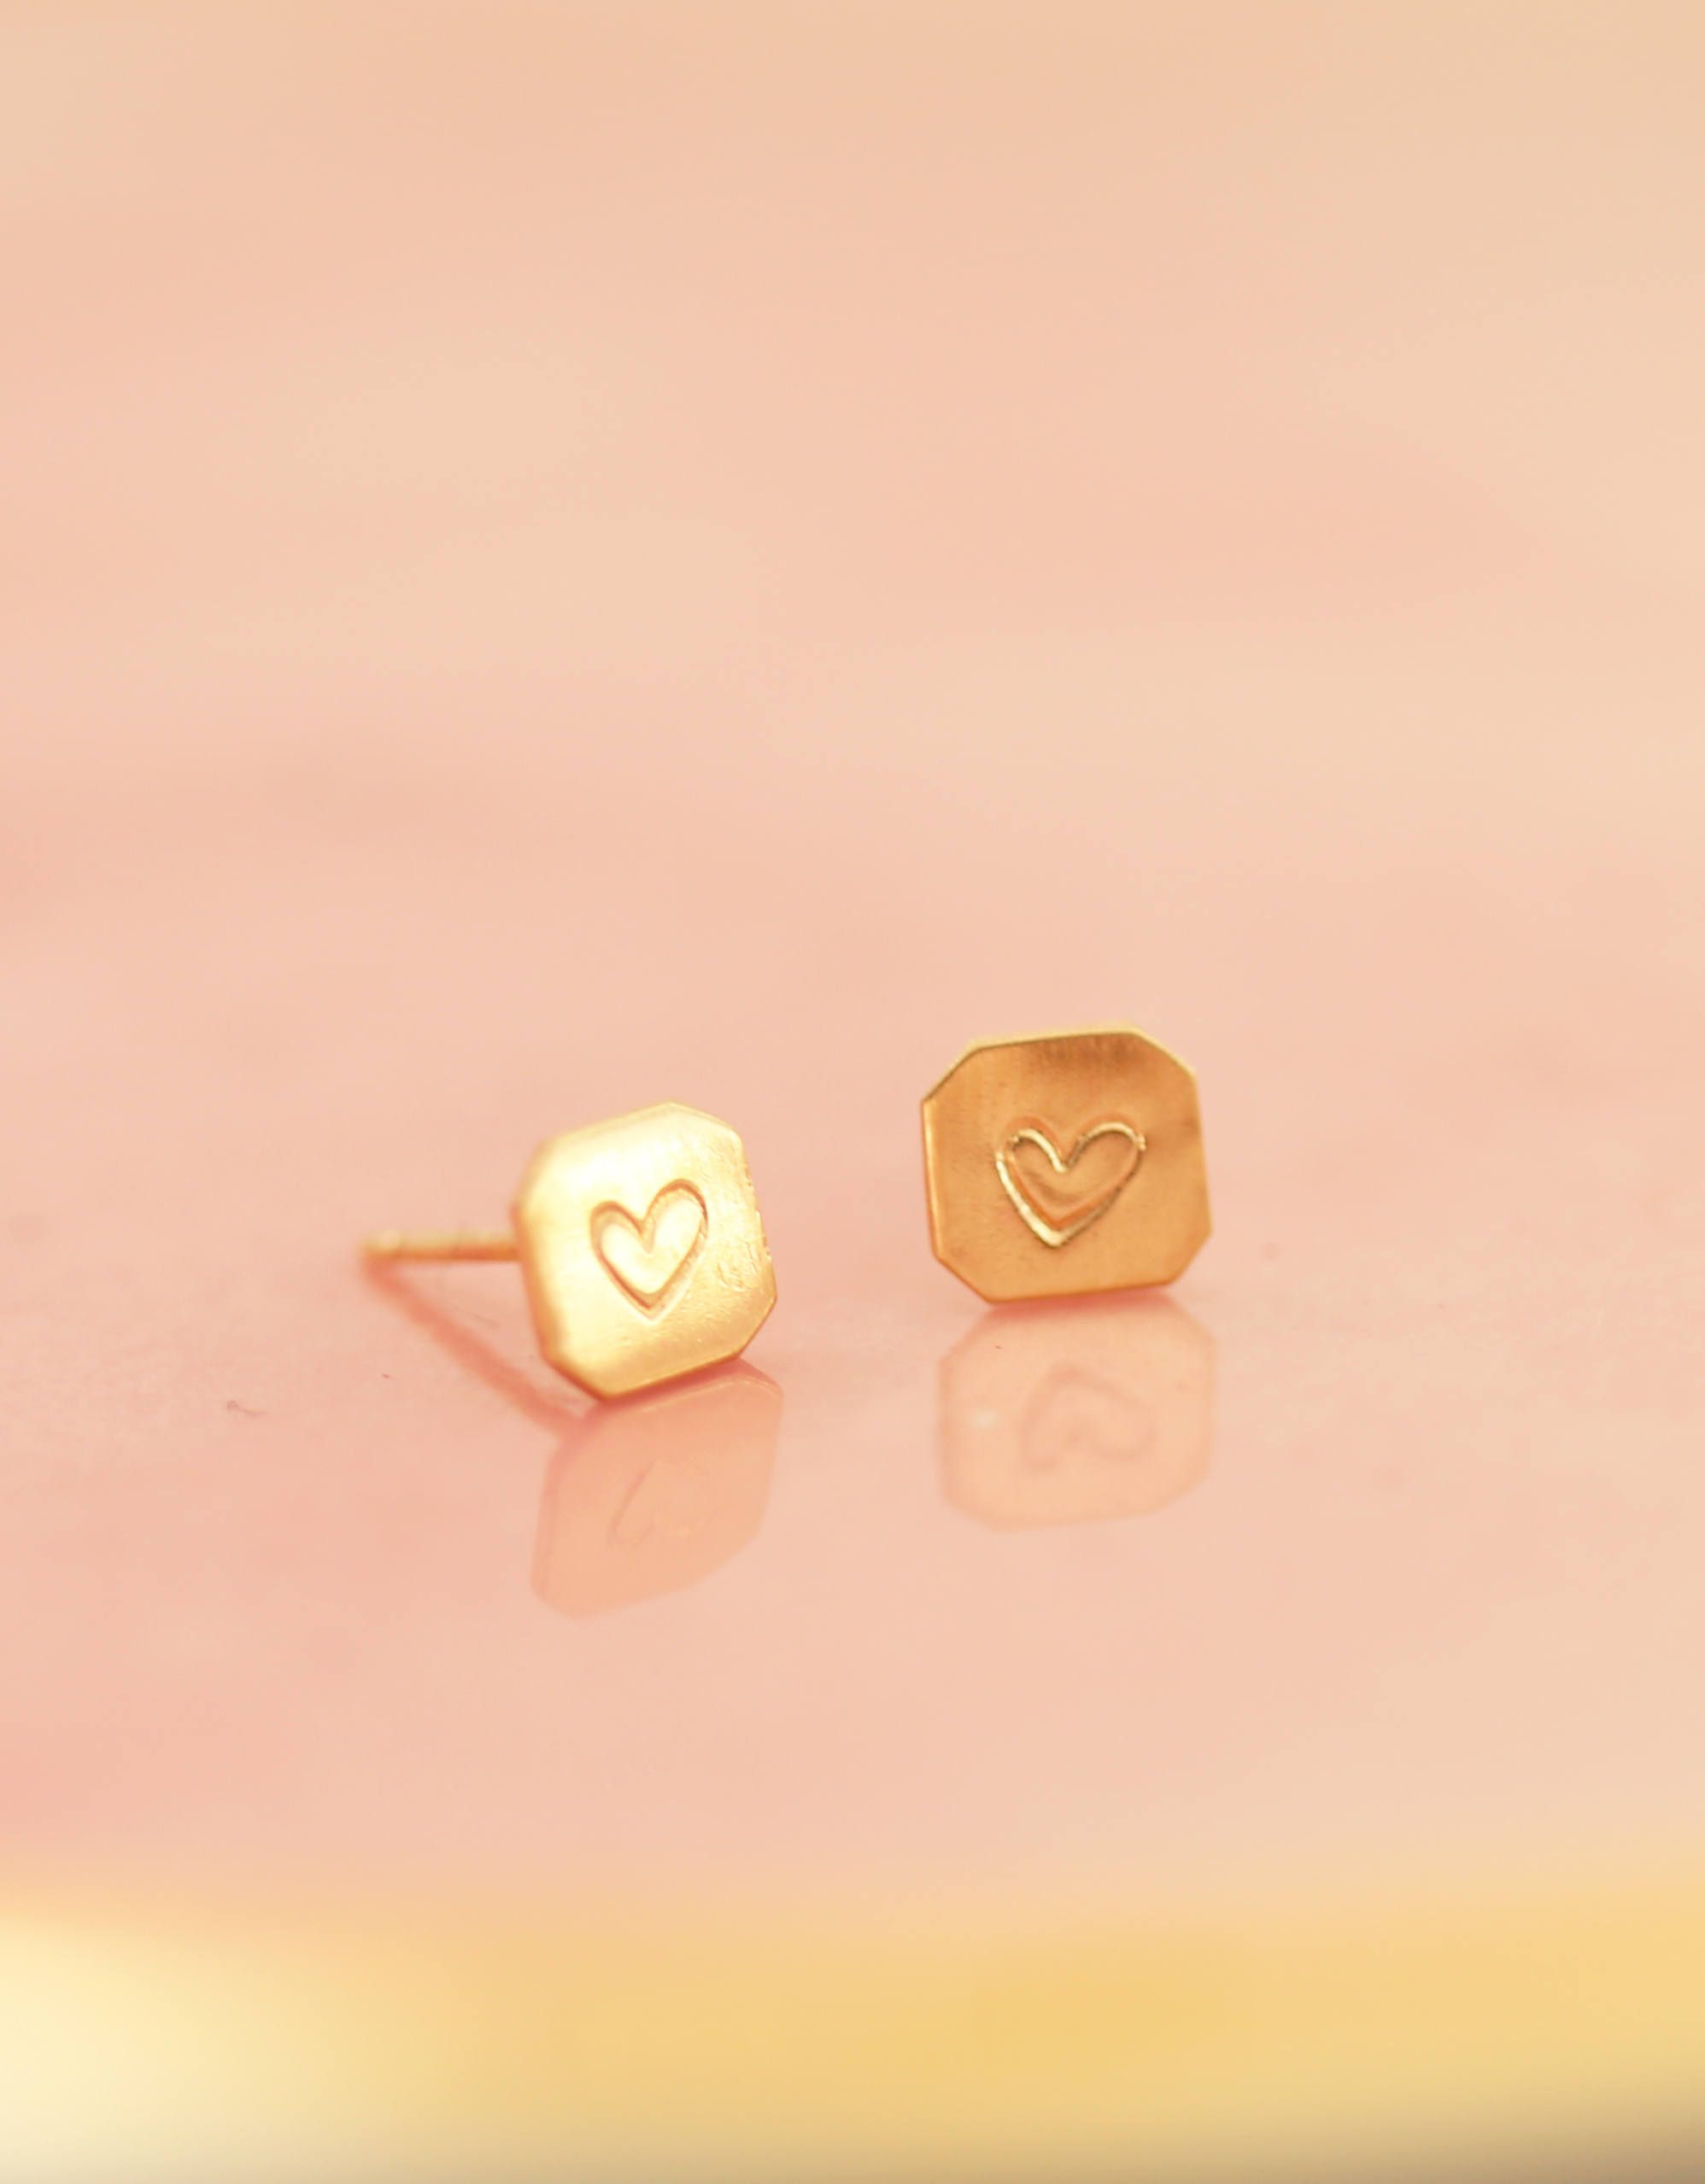 Valentines Day Gold Heart Stud Earrings For Her Studs 14k Wife Gift Friend Golden Birthday Jewelry By Erinpelicano